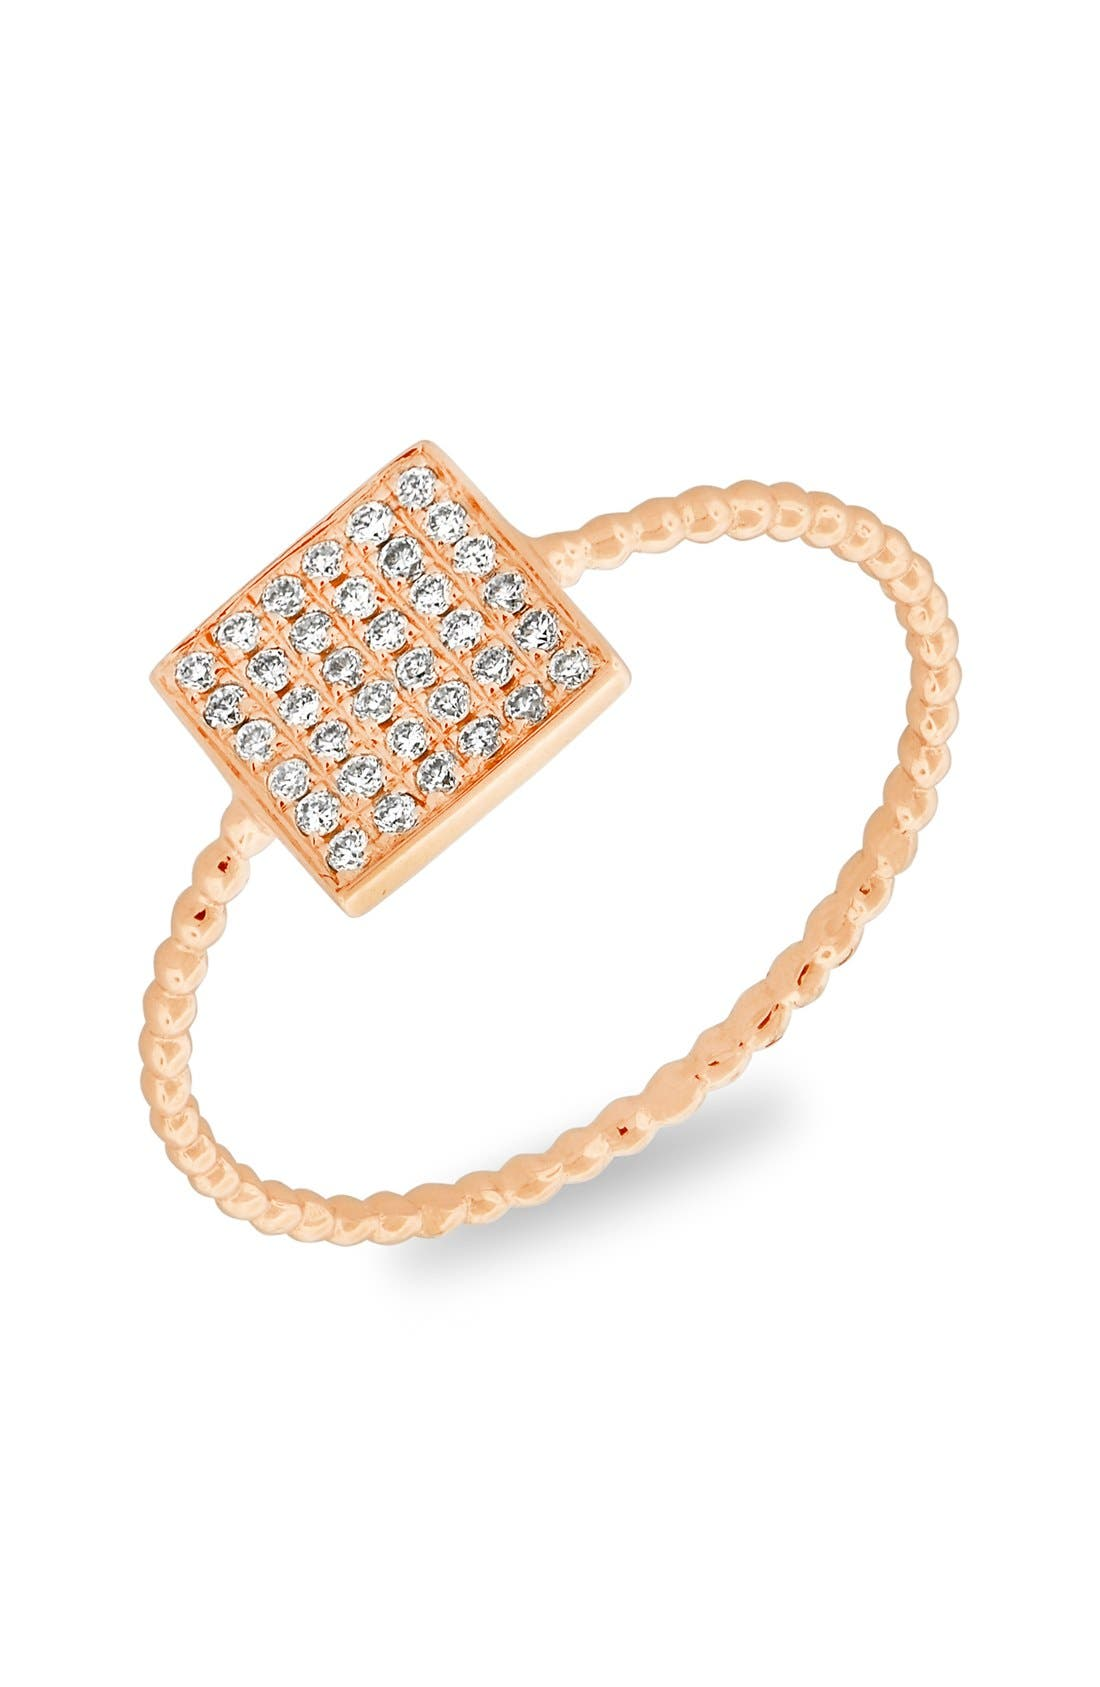 Main Image - Bony Levy Aurora Diamond Pavé Square Ring (Nordstrom Exclusive)